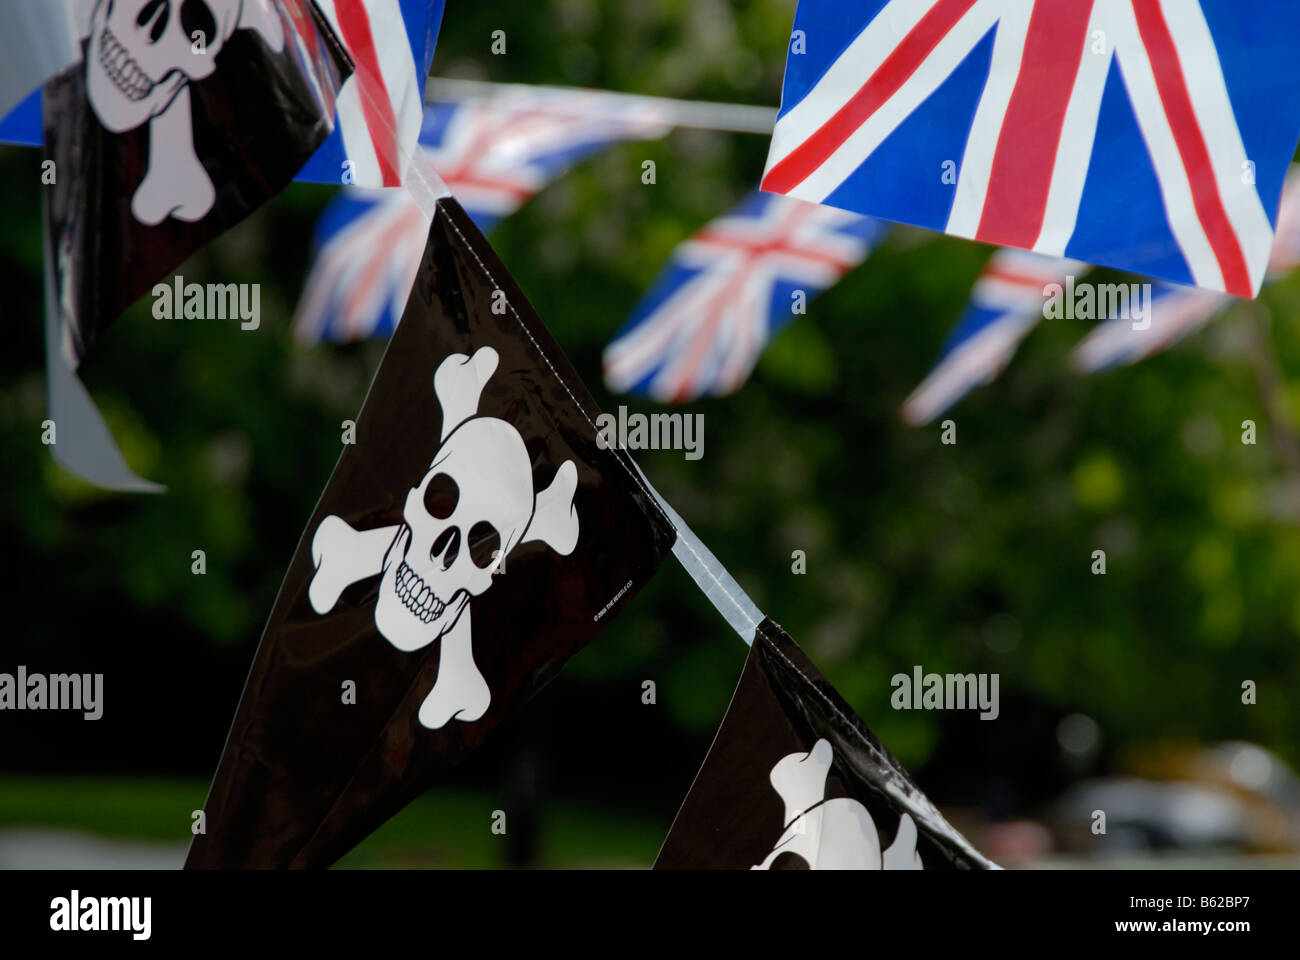 Jolly Roger pirate pennants and Union Jack flags strung up on a narrowboat, Little Venice, London, England Stock Photo